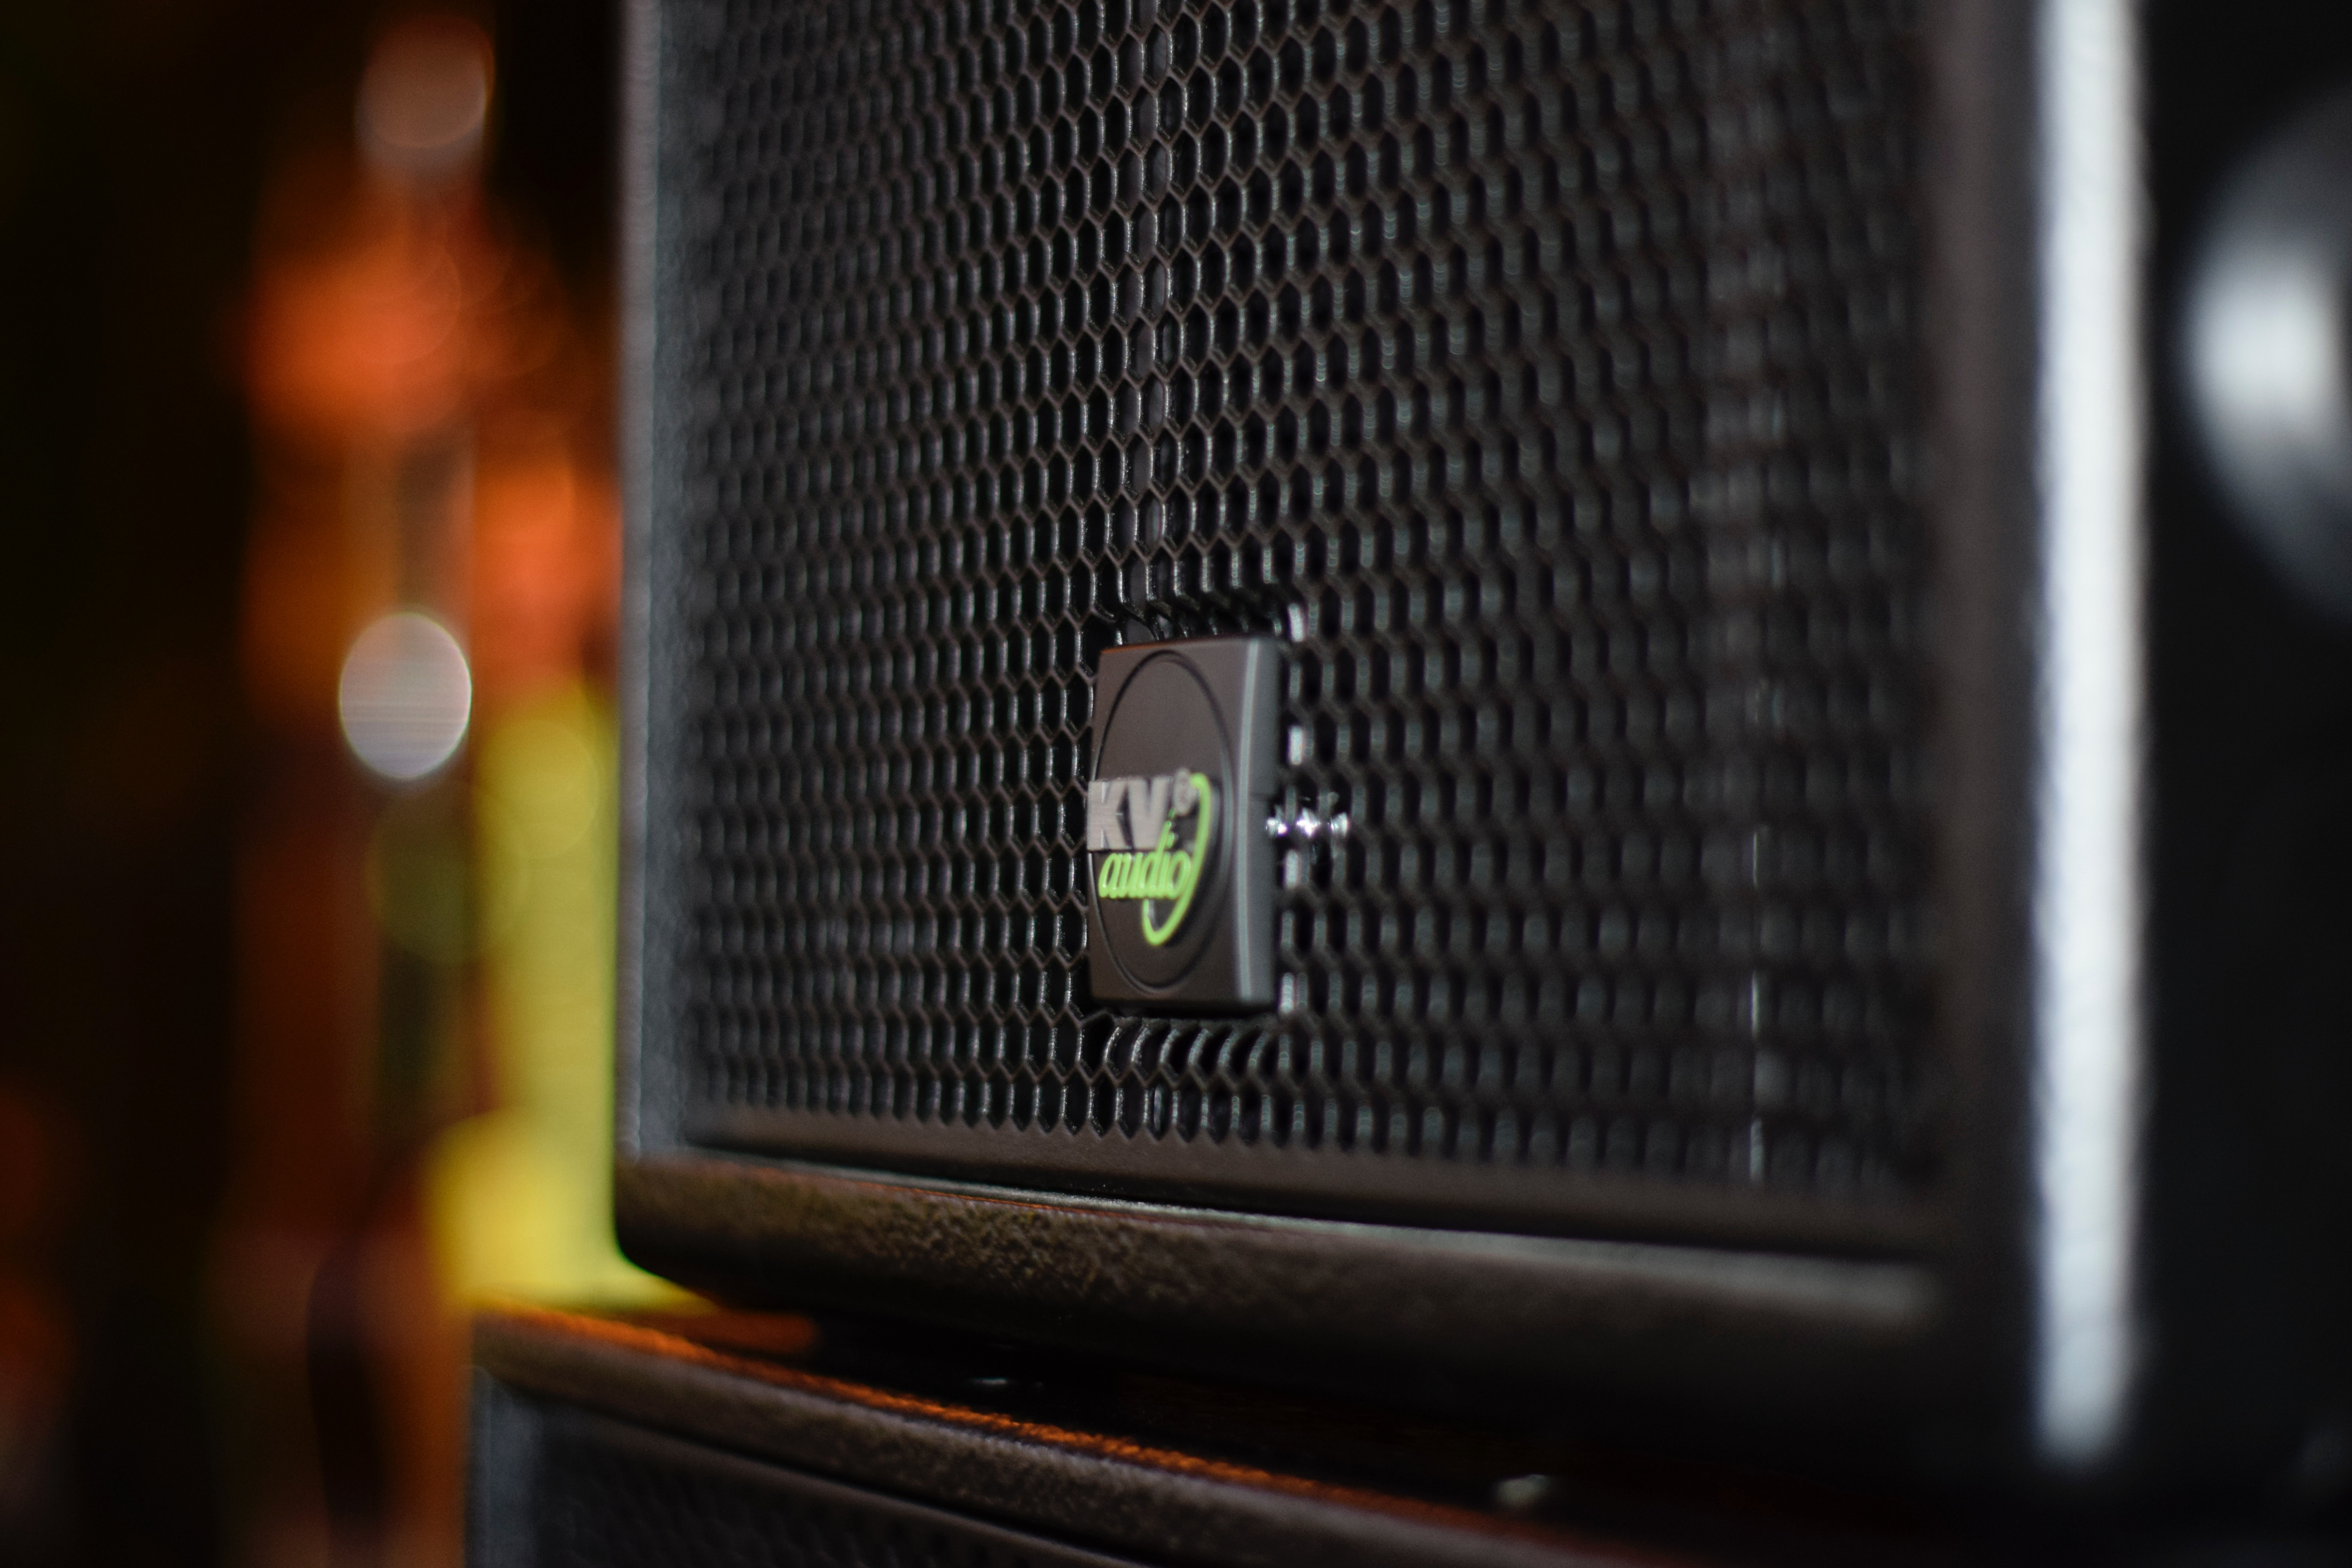 An in-depth review of the best tailgate speakers available in 2019.